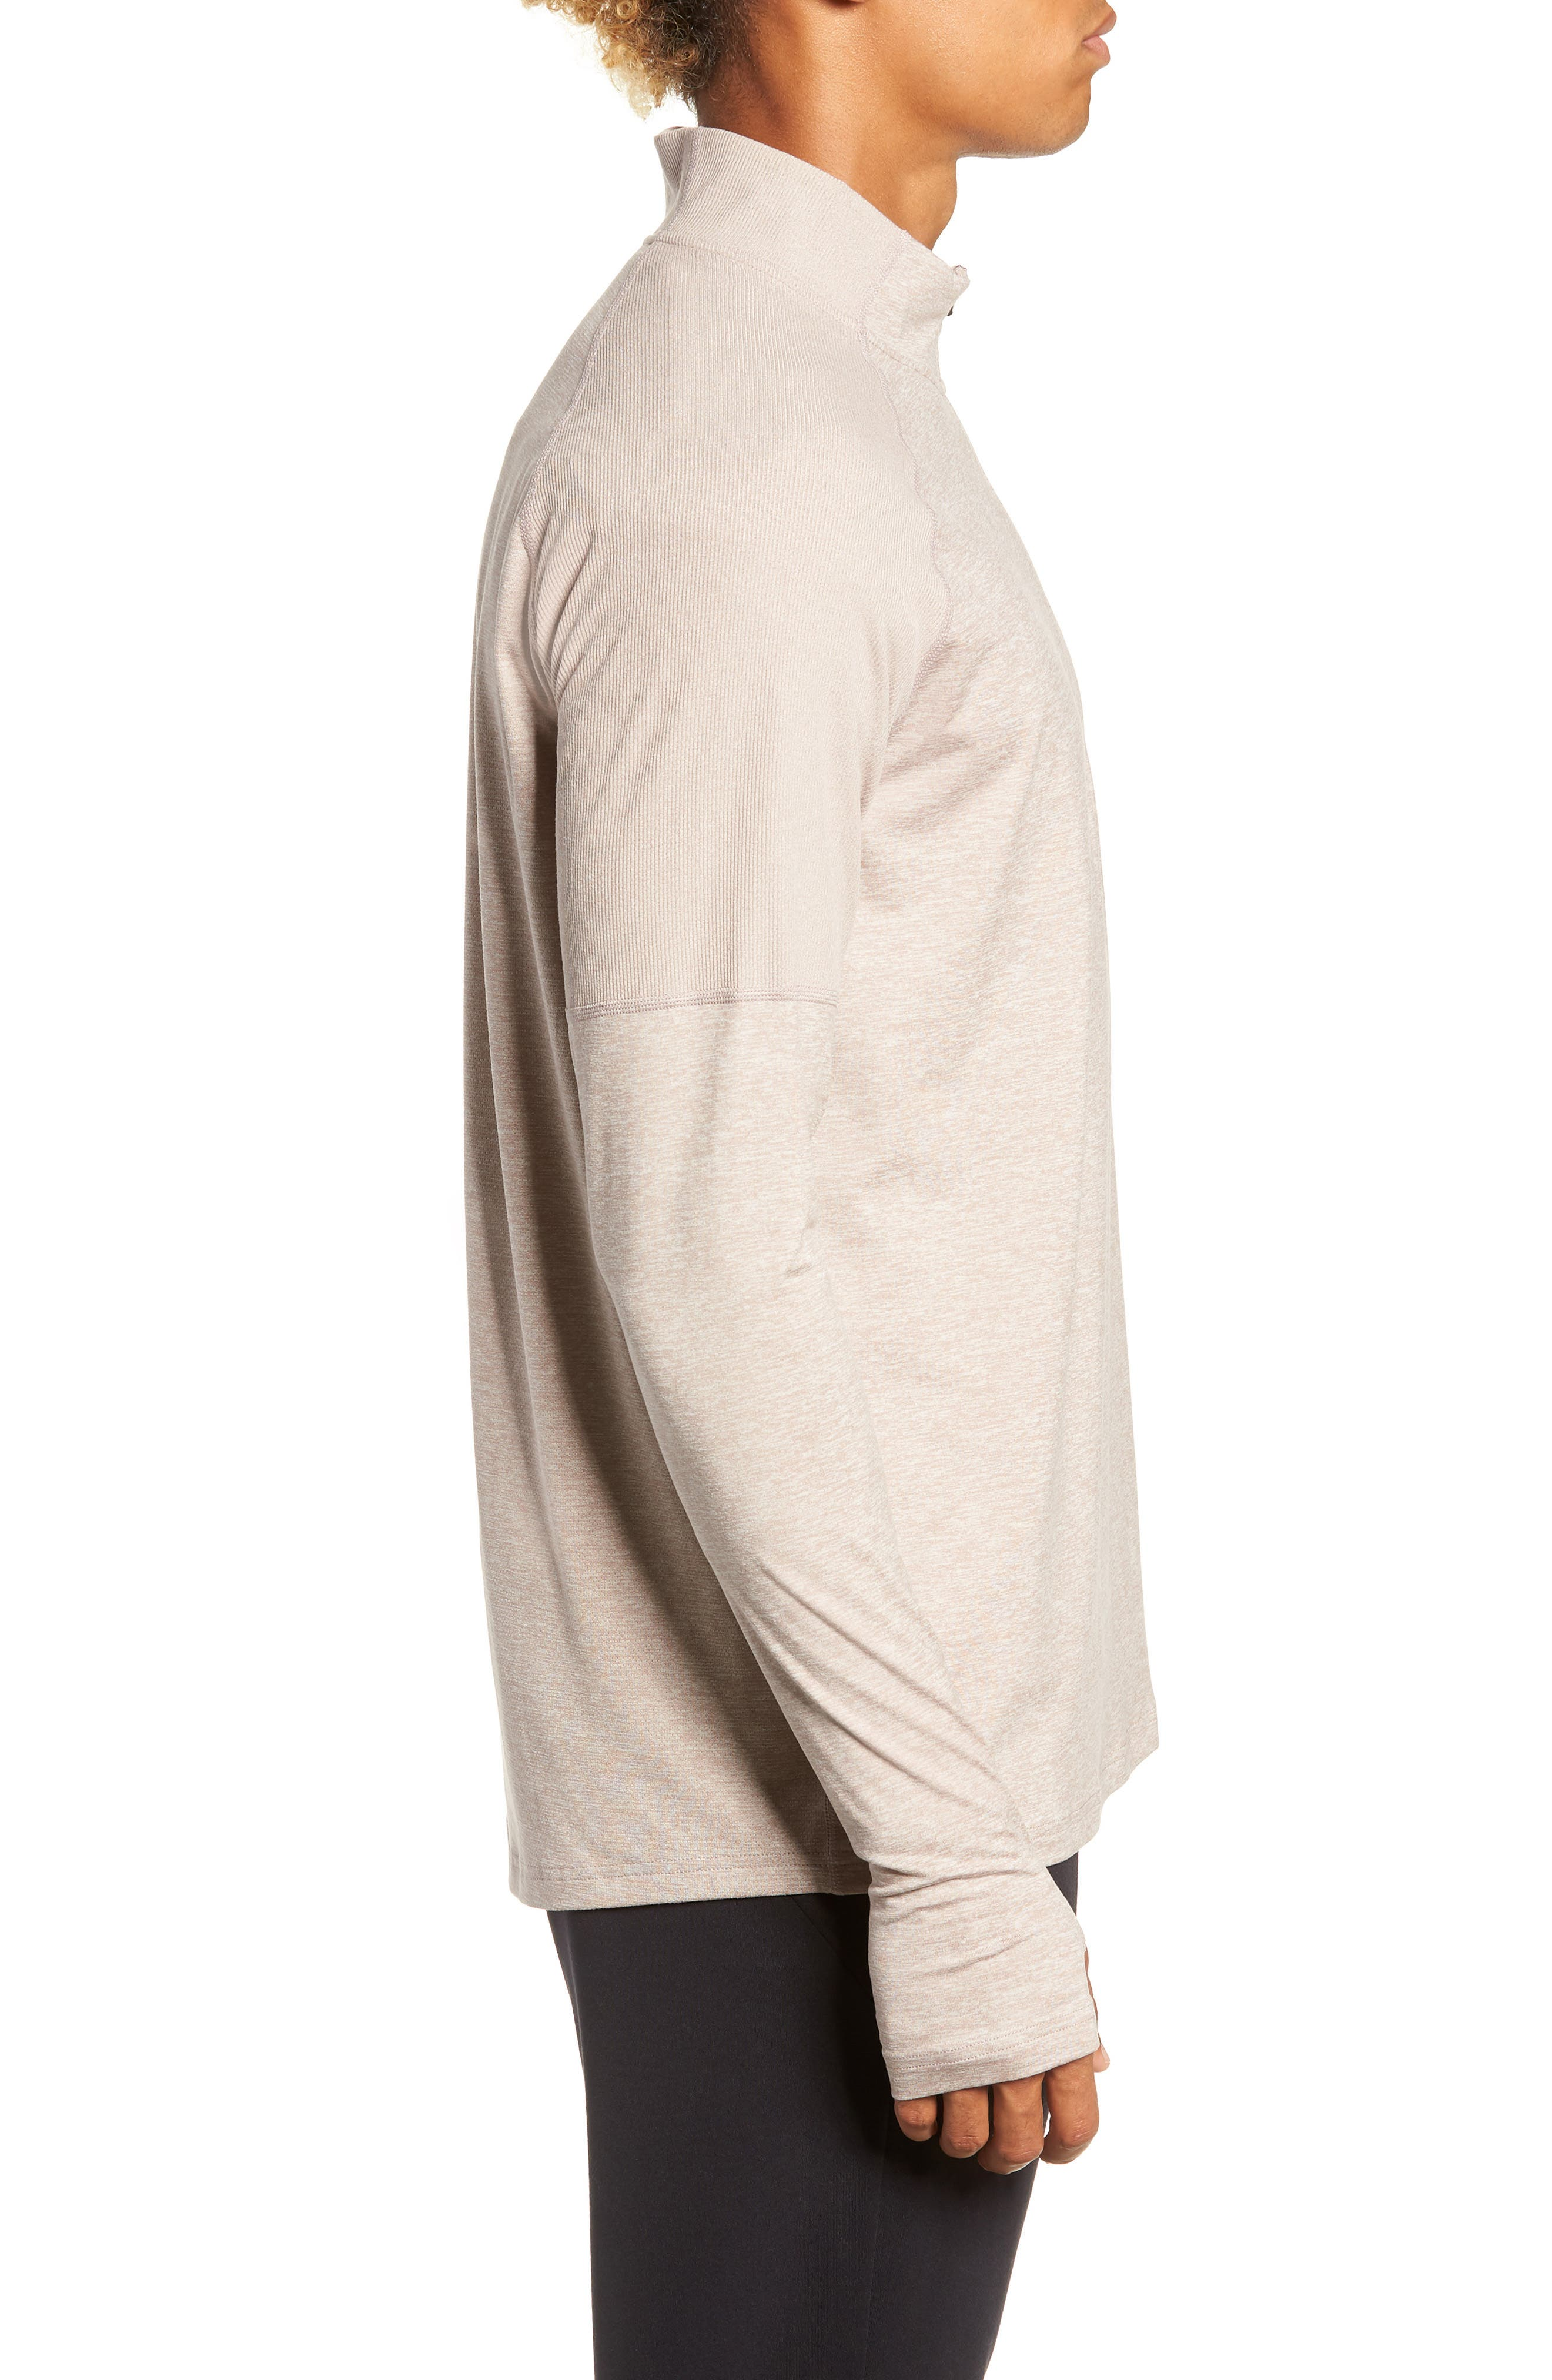 Element HZ 2.0 Performance Pullover,                             Alternate thumbnail 3, color,                             DIFFUSED TAUPE/ SAND/ HEATHER